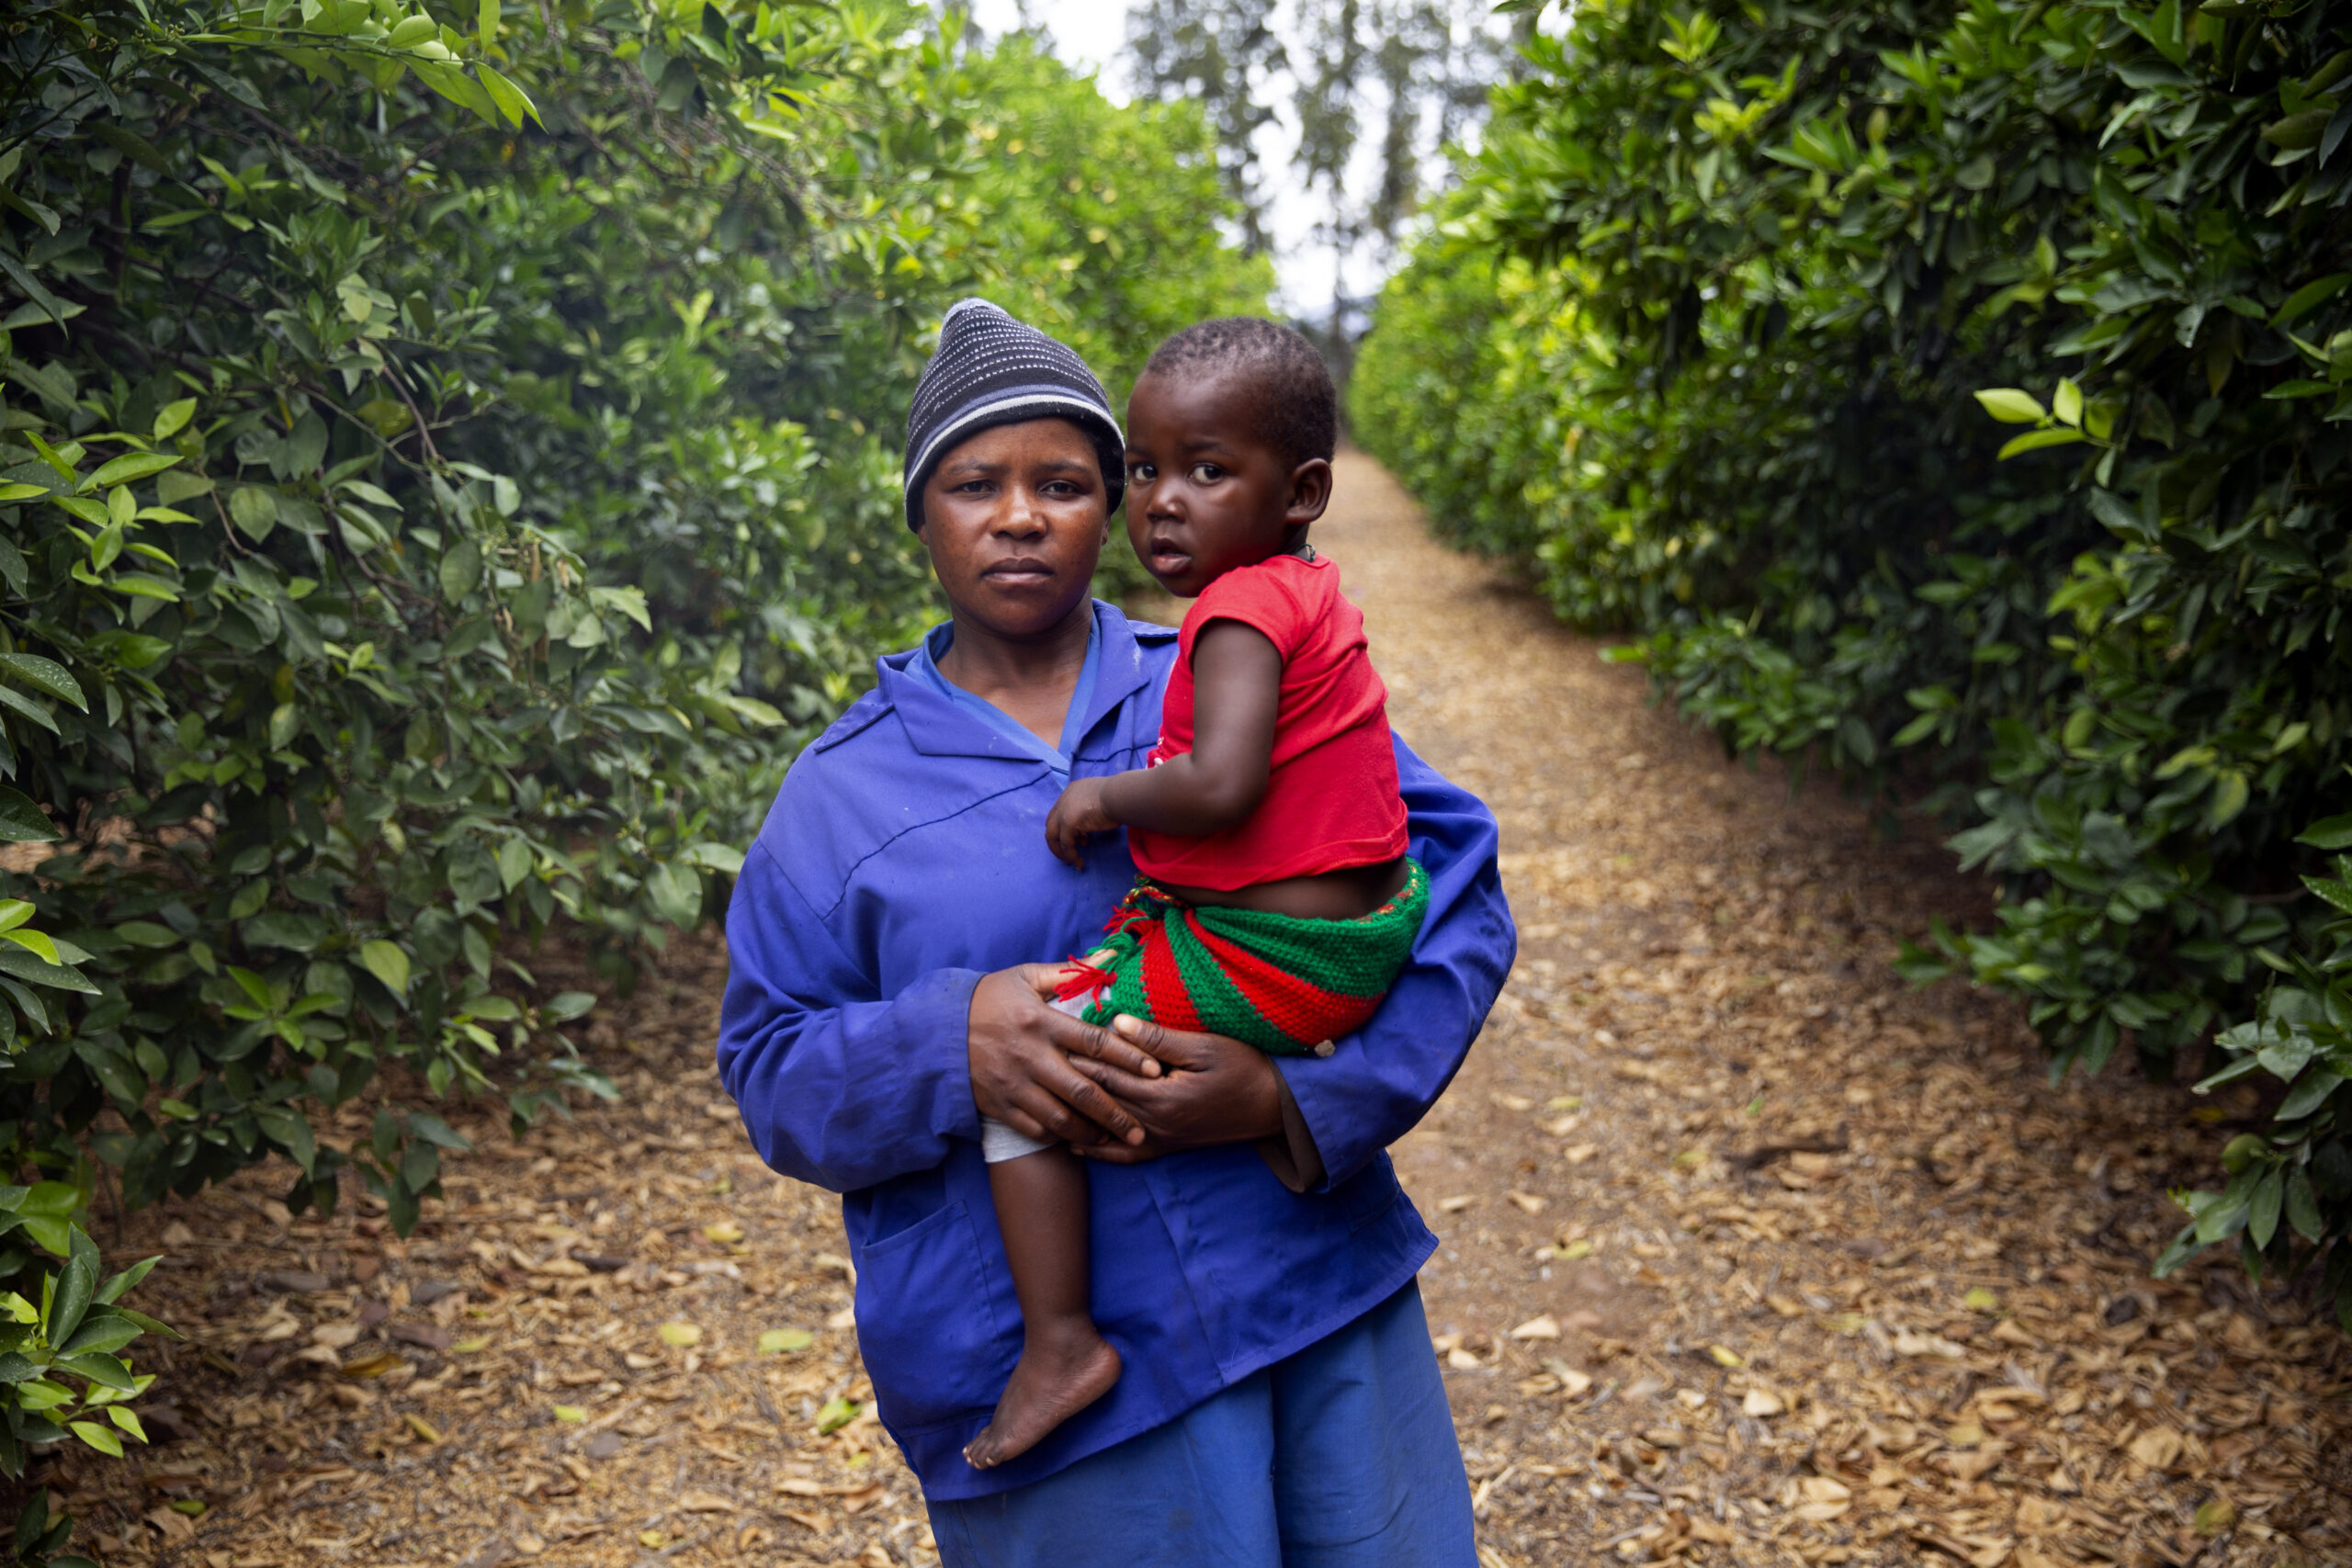 When the fruit is packed into boxes, many farm workers disappear, making it difficult to keep them on HIV treatment. Dylan Bush